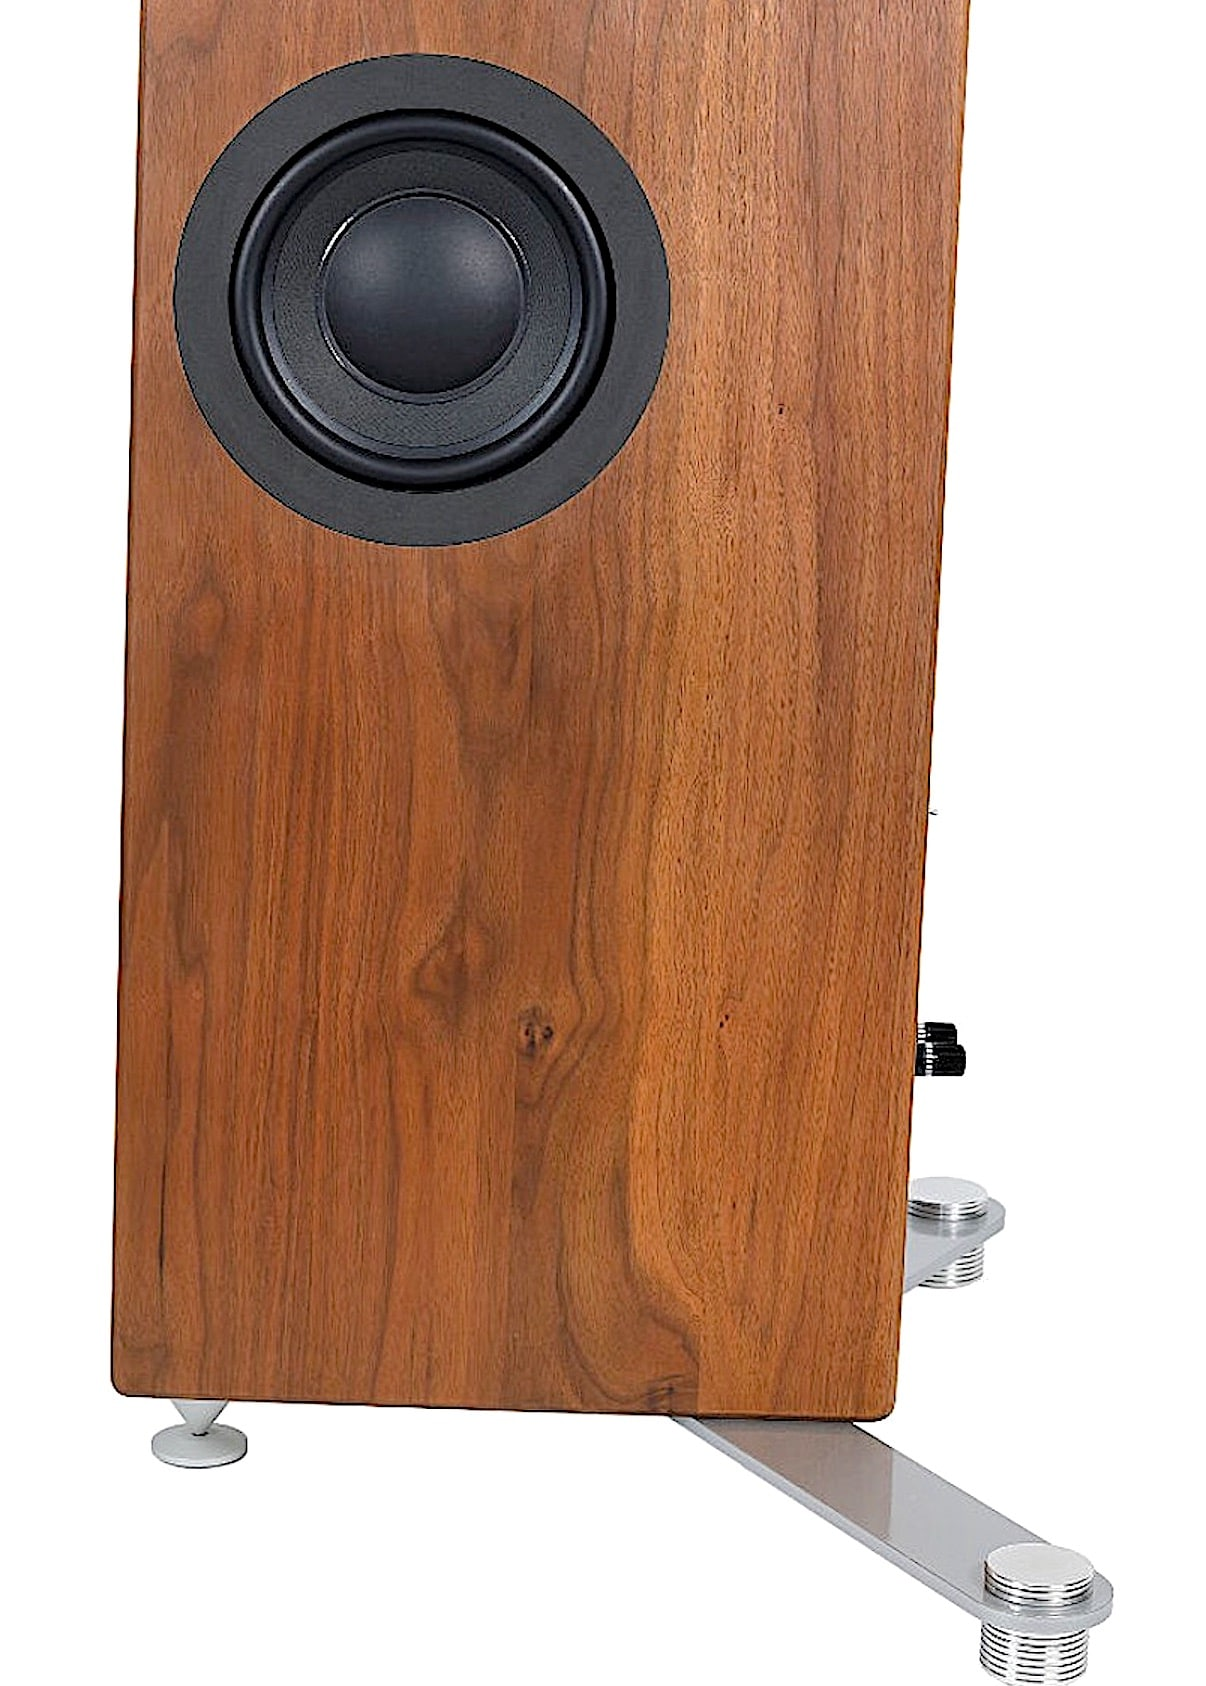 Poison 8 Speakers From Auris Audio - The Audiophile Man